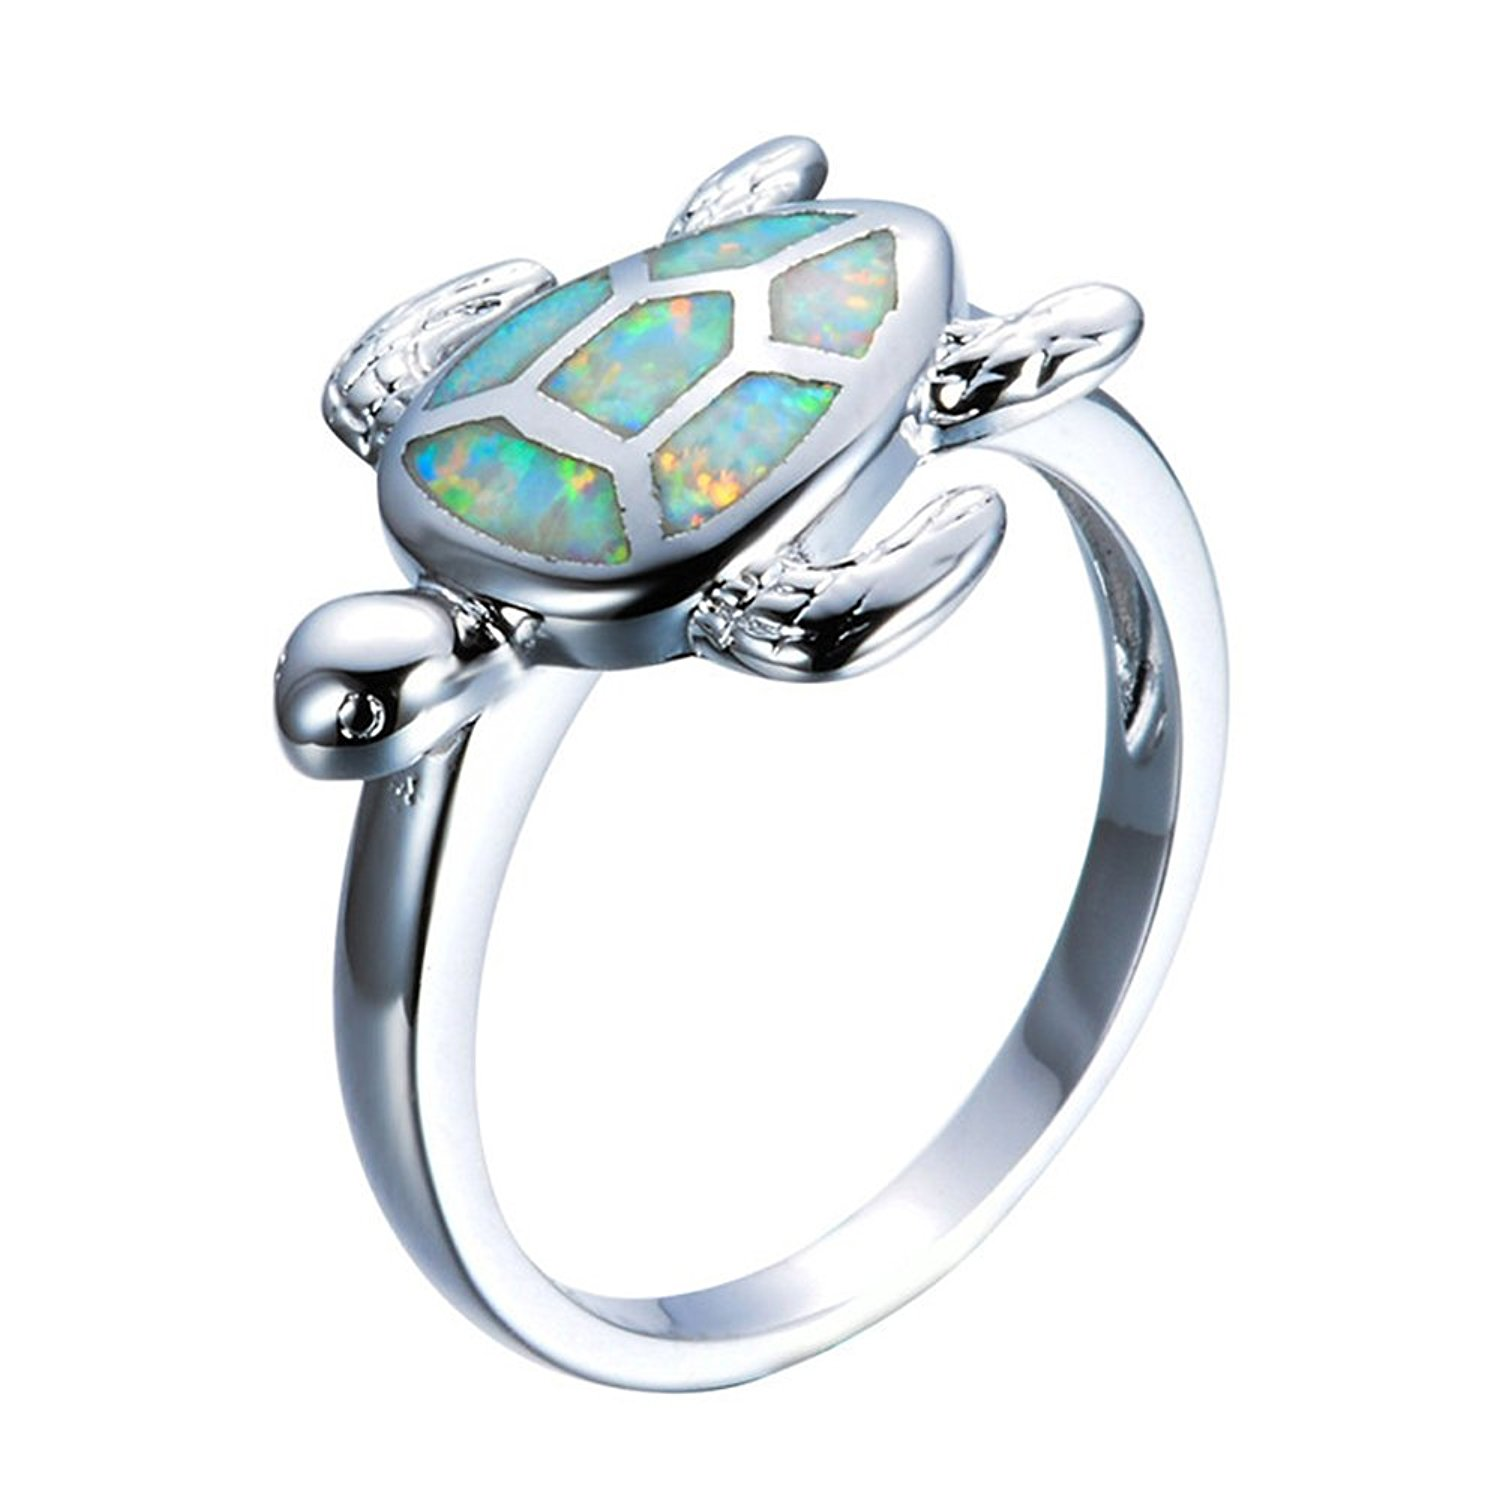 Cheap Turtle Wedding Ring Find Turtle Wedding Ring Deals On Line At